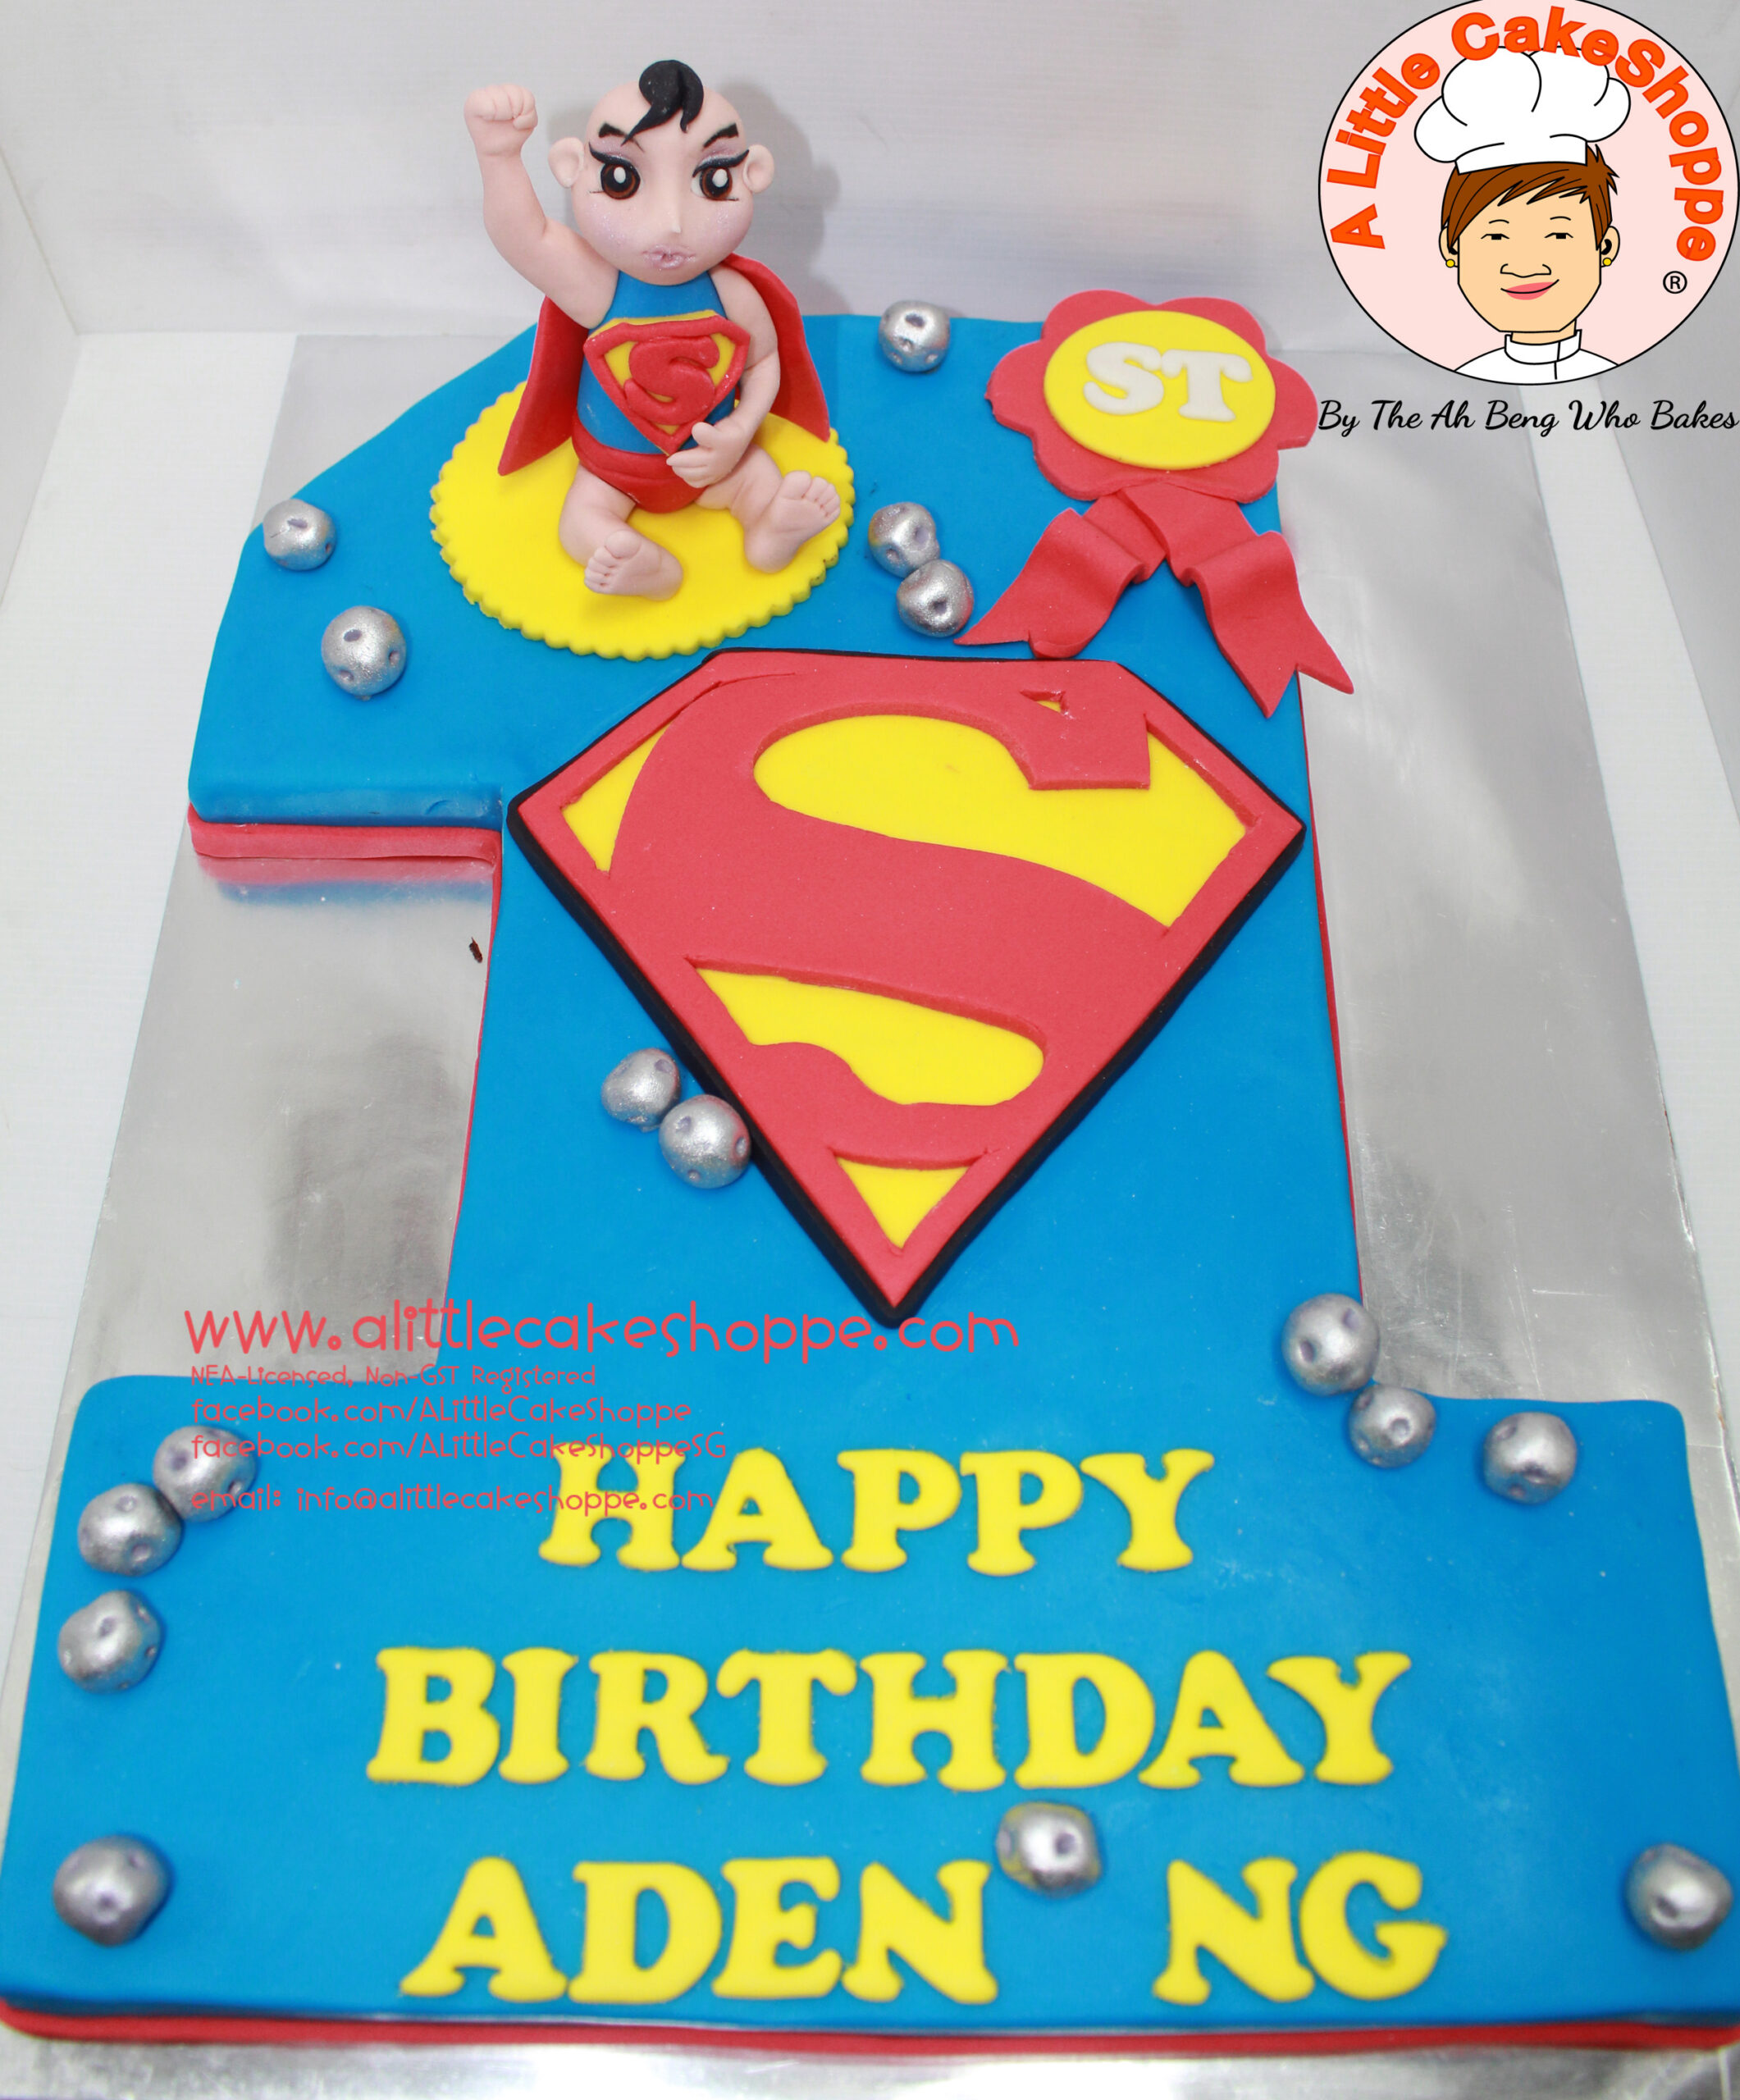 Best Customised Cake Singapore custom cake 2D 3D birthday cake cupcakes desserts wedding corporate events anniversary 1st birthday 21st birthday fondant fresh cream buttercream cakes alittlecakeshoppe a little cake shoppe compliments review singapore bakers SG cakeshop ah beng who bakes superhero avengers dc hero superman